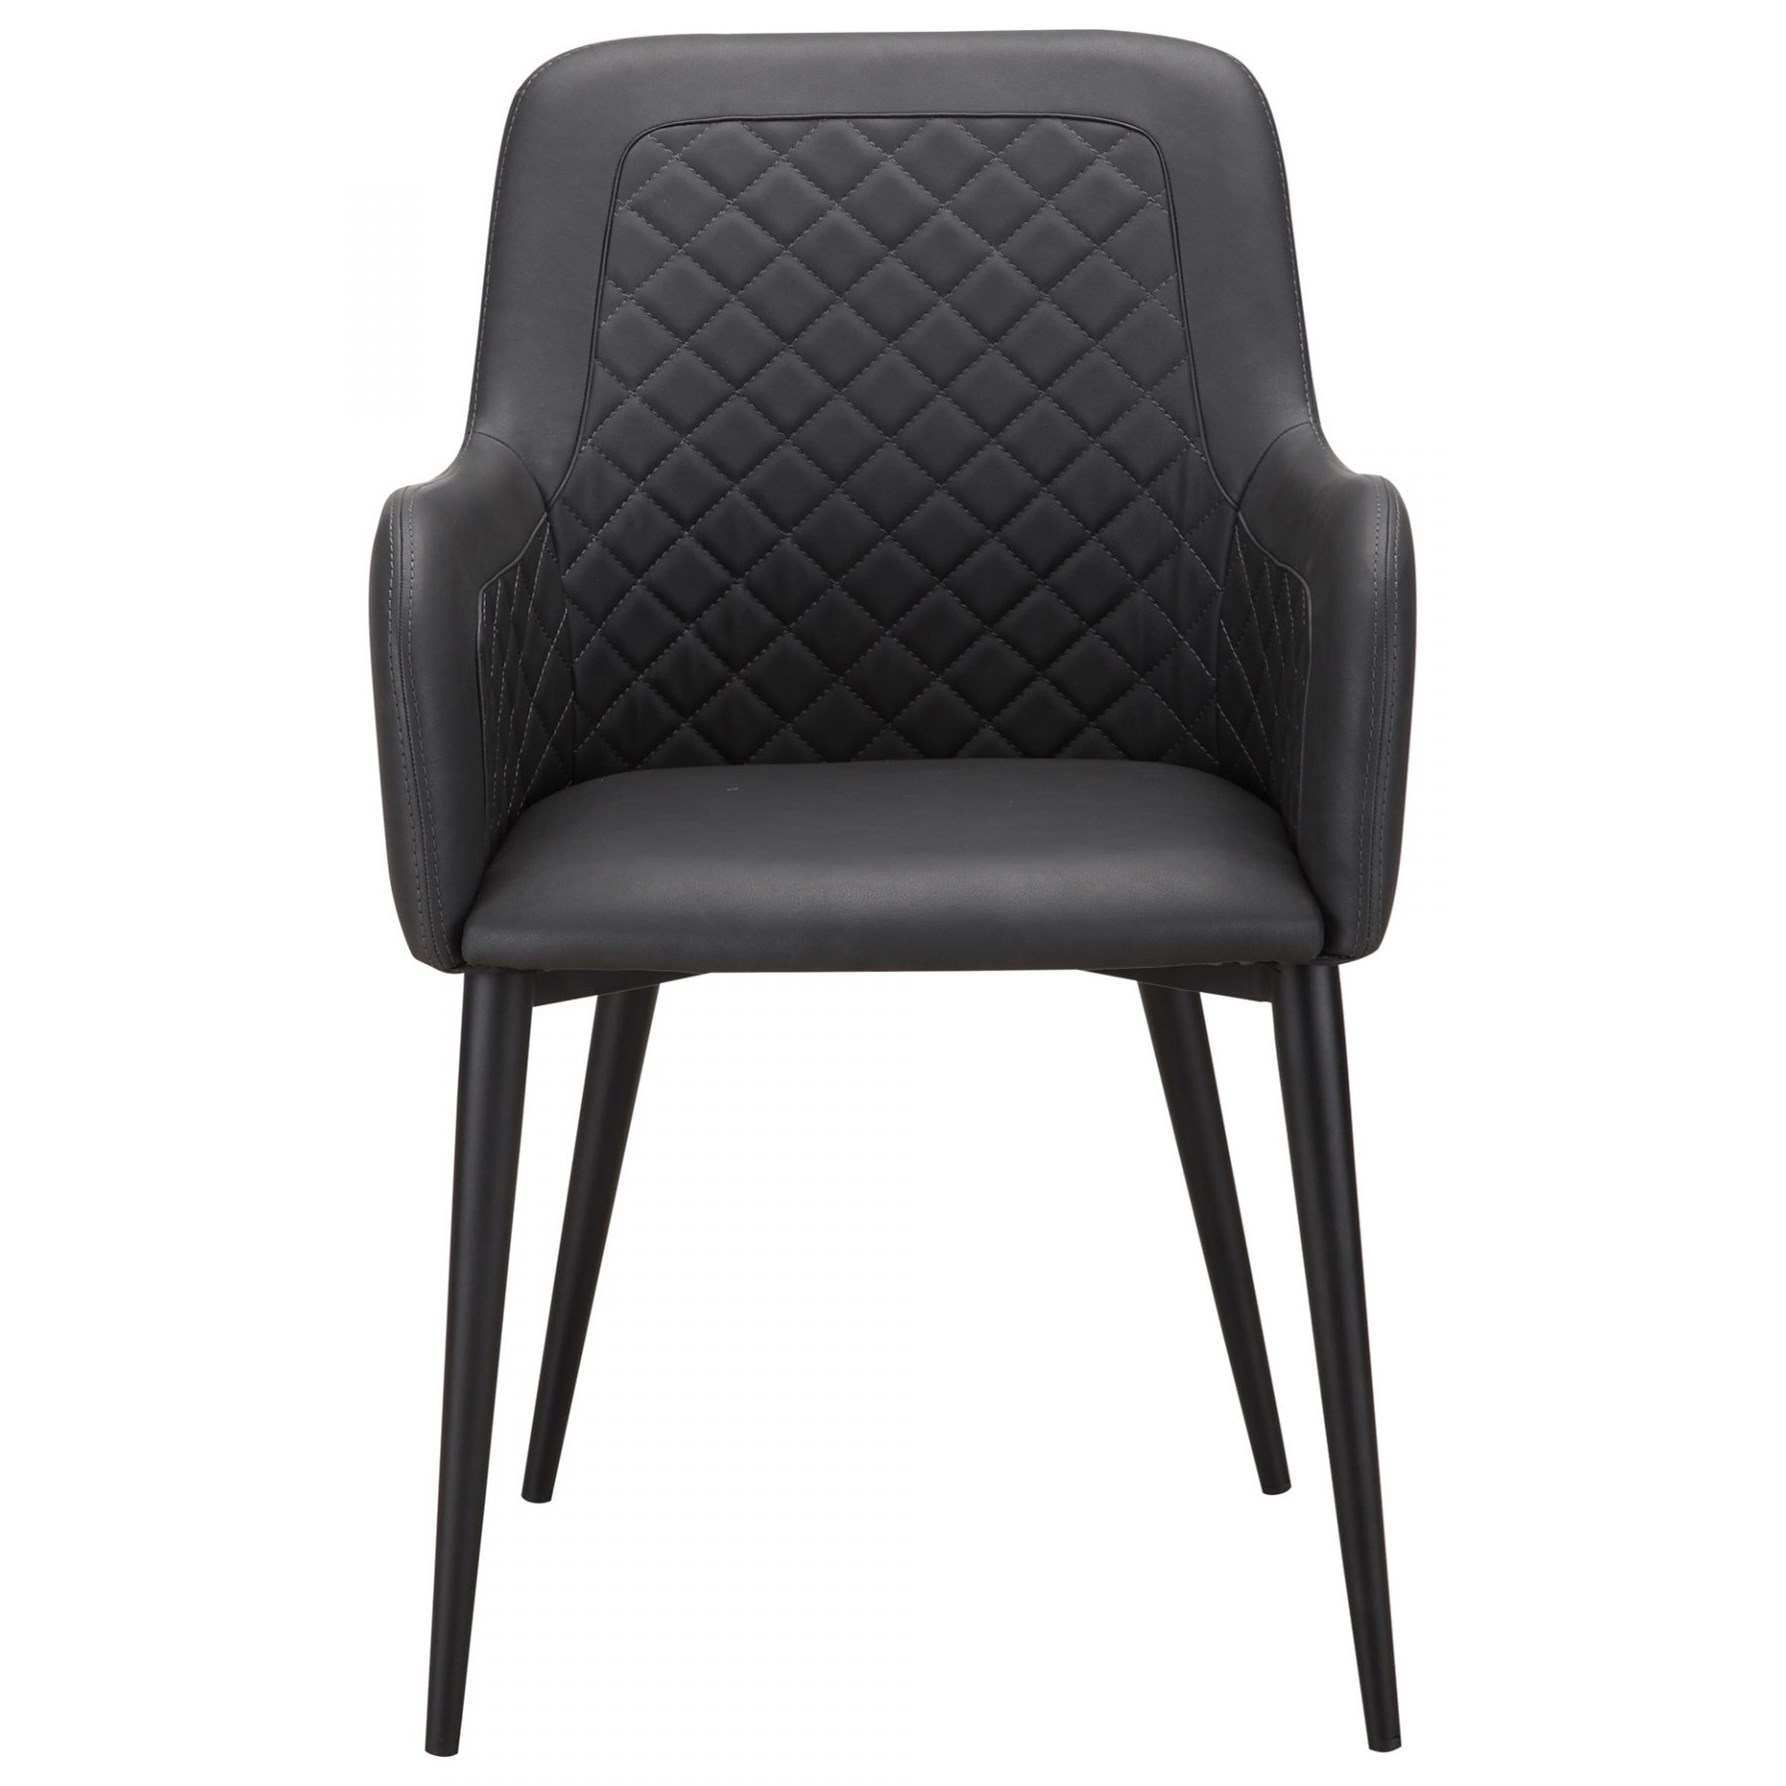 Cantata Quilted Faux Leather Dining Chair by Moe's Home Collection at Stoney Creek Furniture